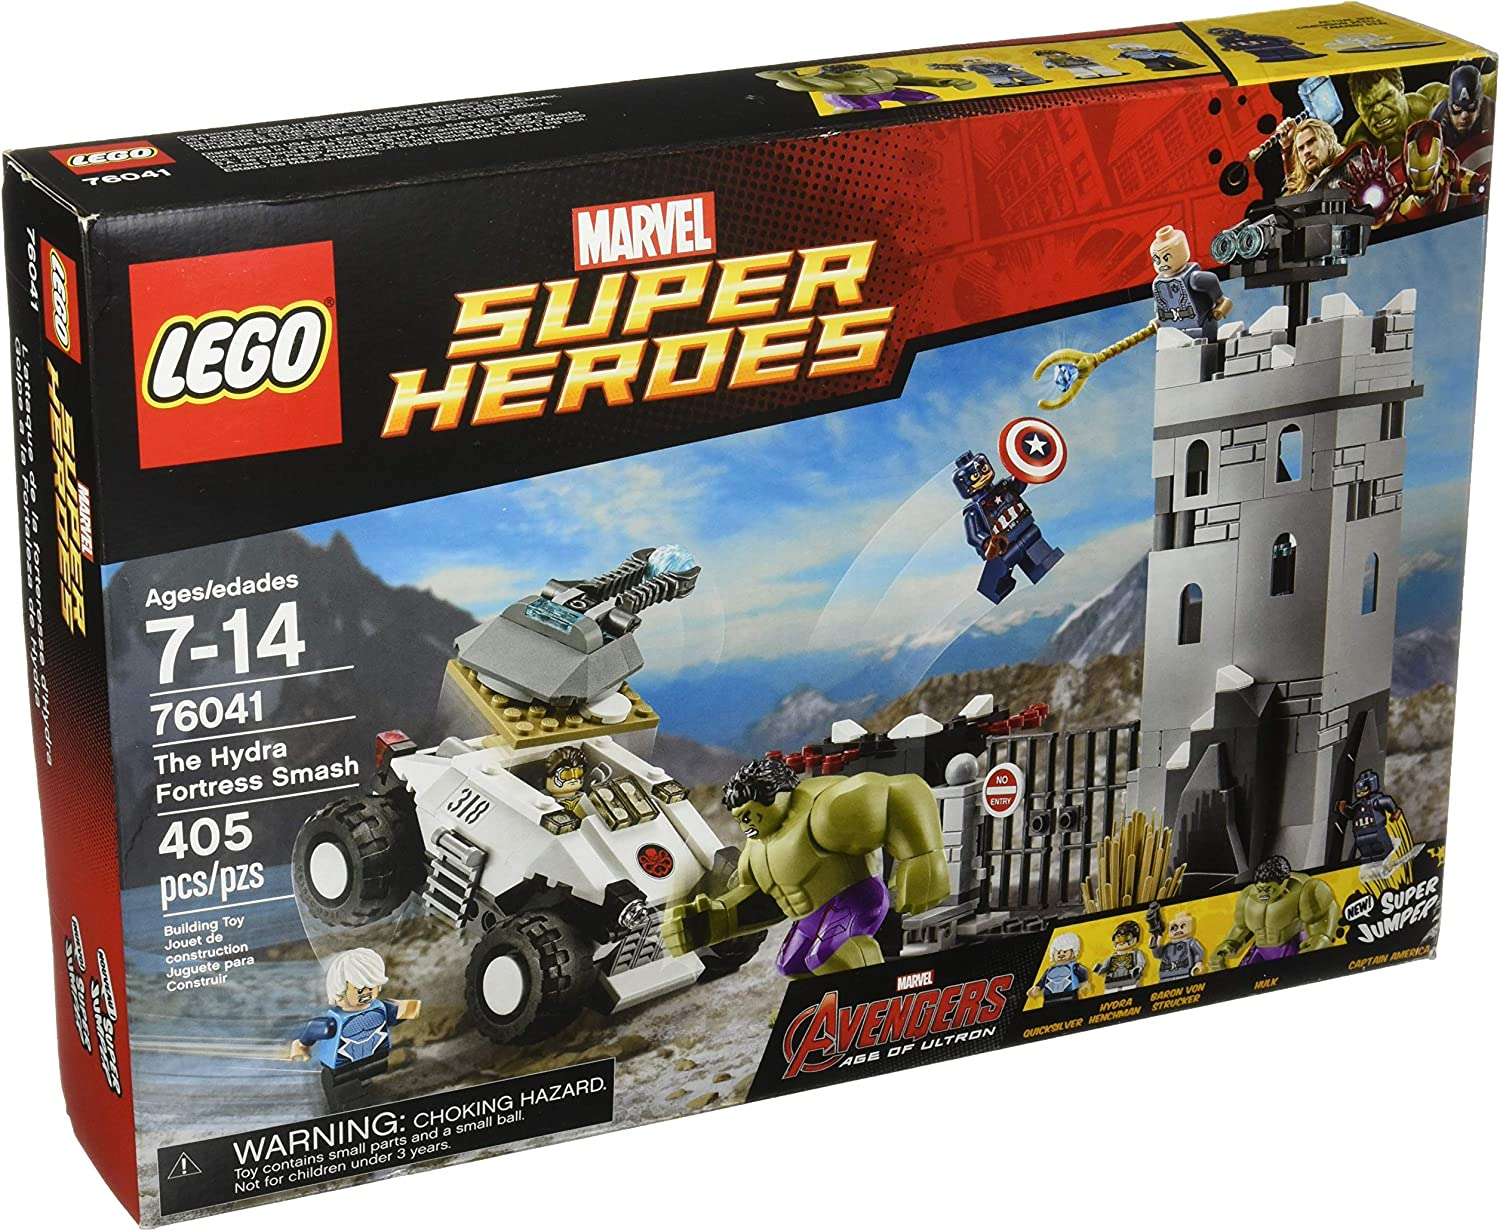 LEGO 76041 Choose Your Minifigure CAPTAIN AMERICA HULK QUICKSILVER Age of Ultron